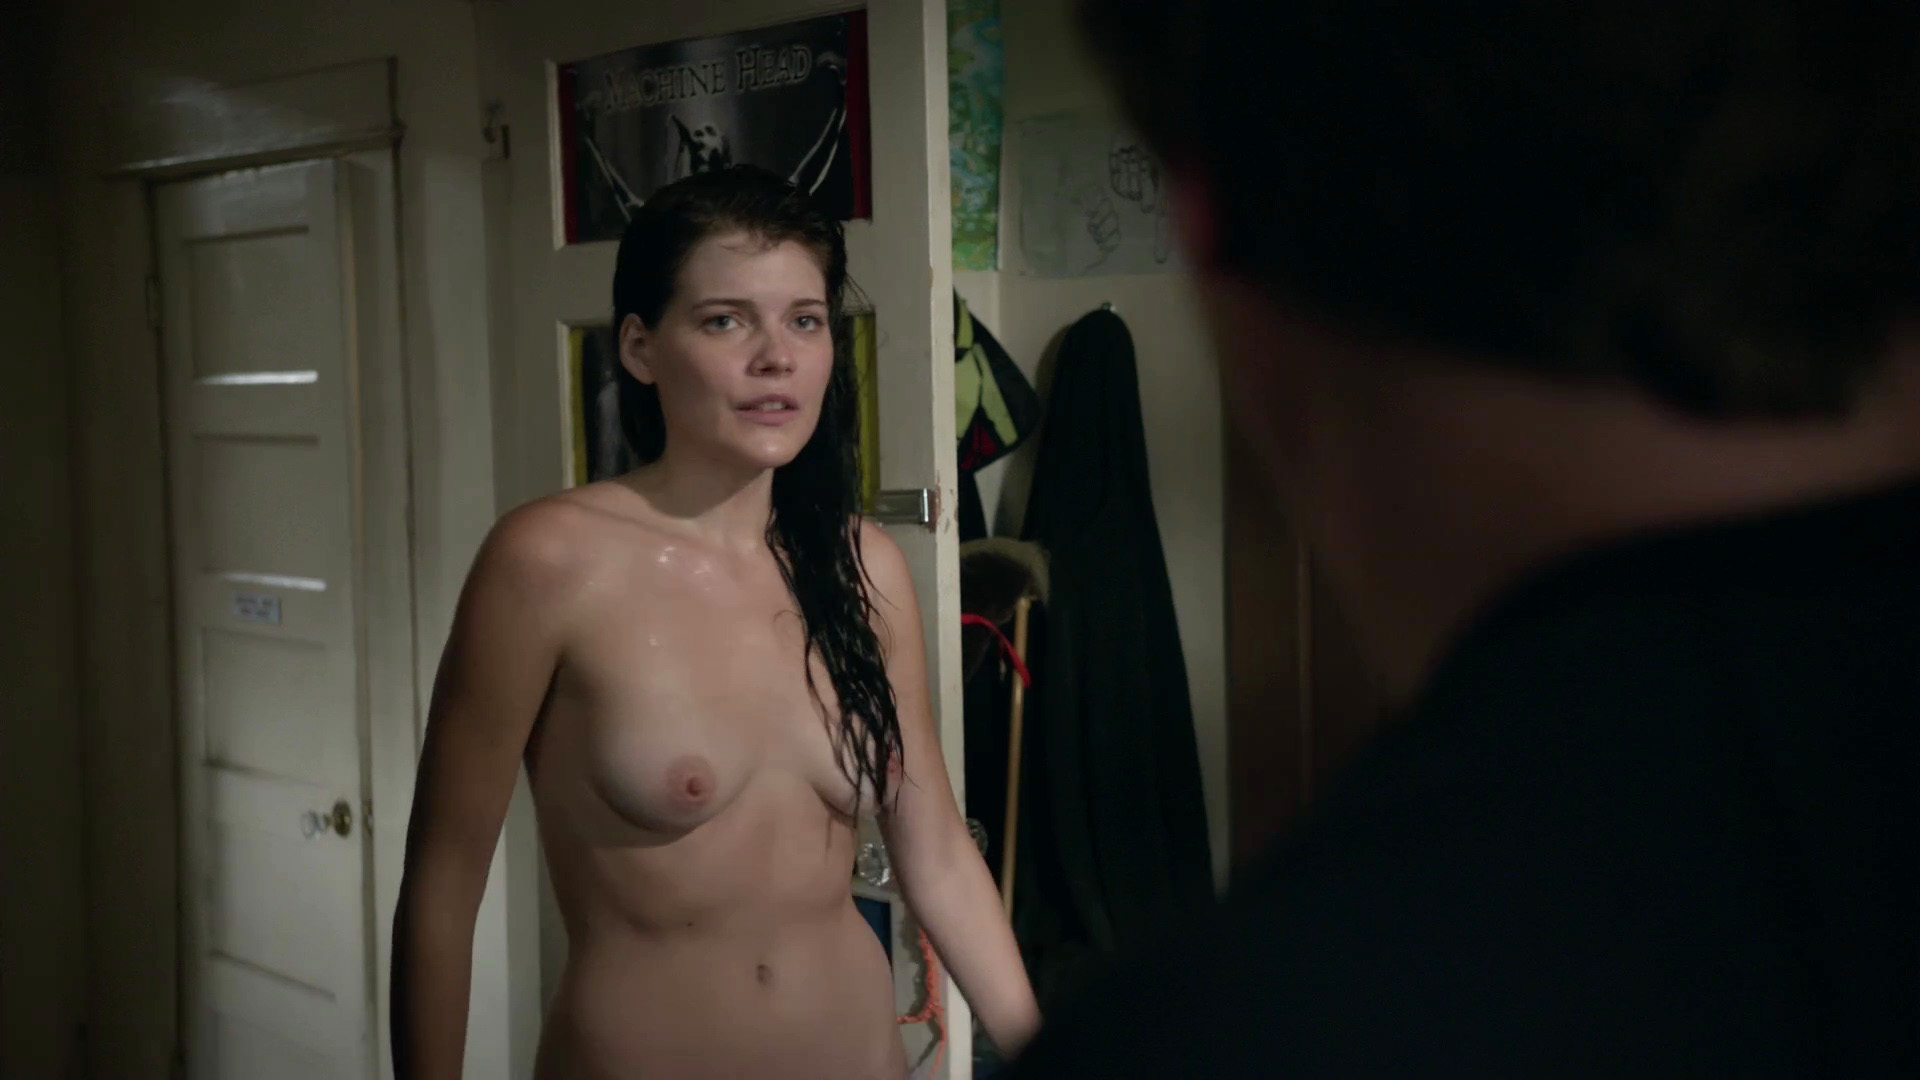 Watch Emma Greenwell Nude Topless Photo Collection - 7 Photos video